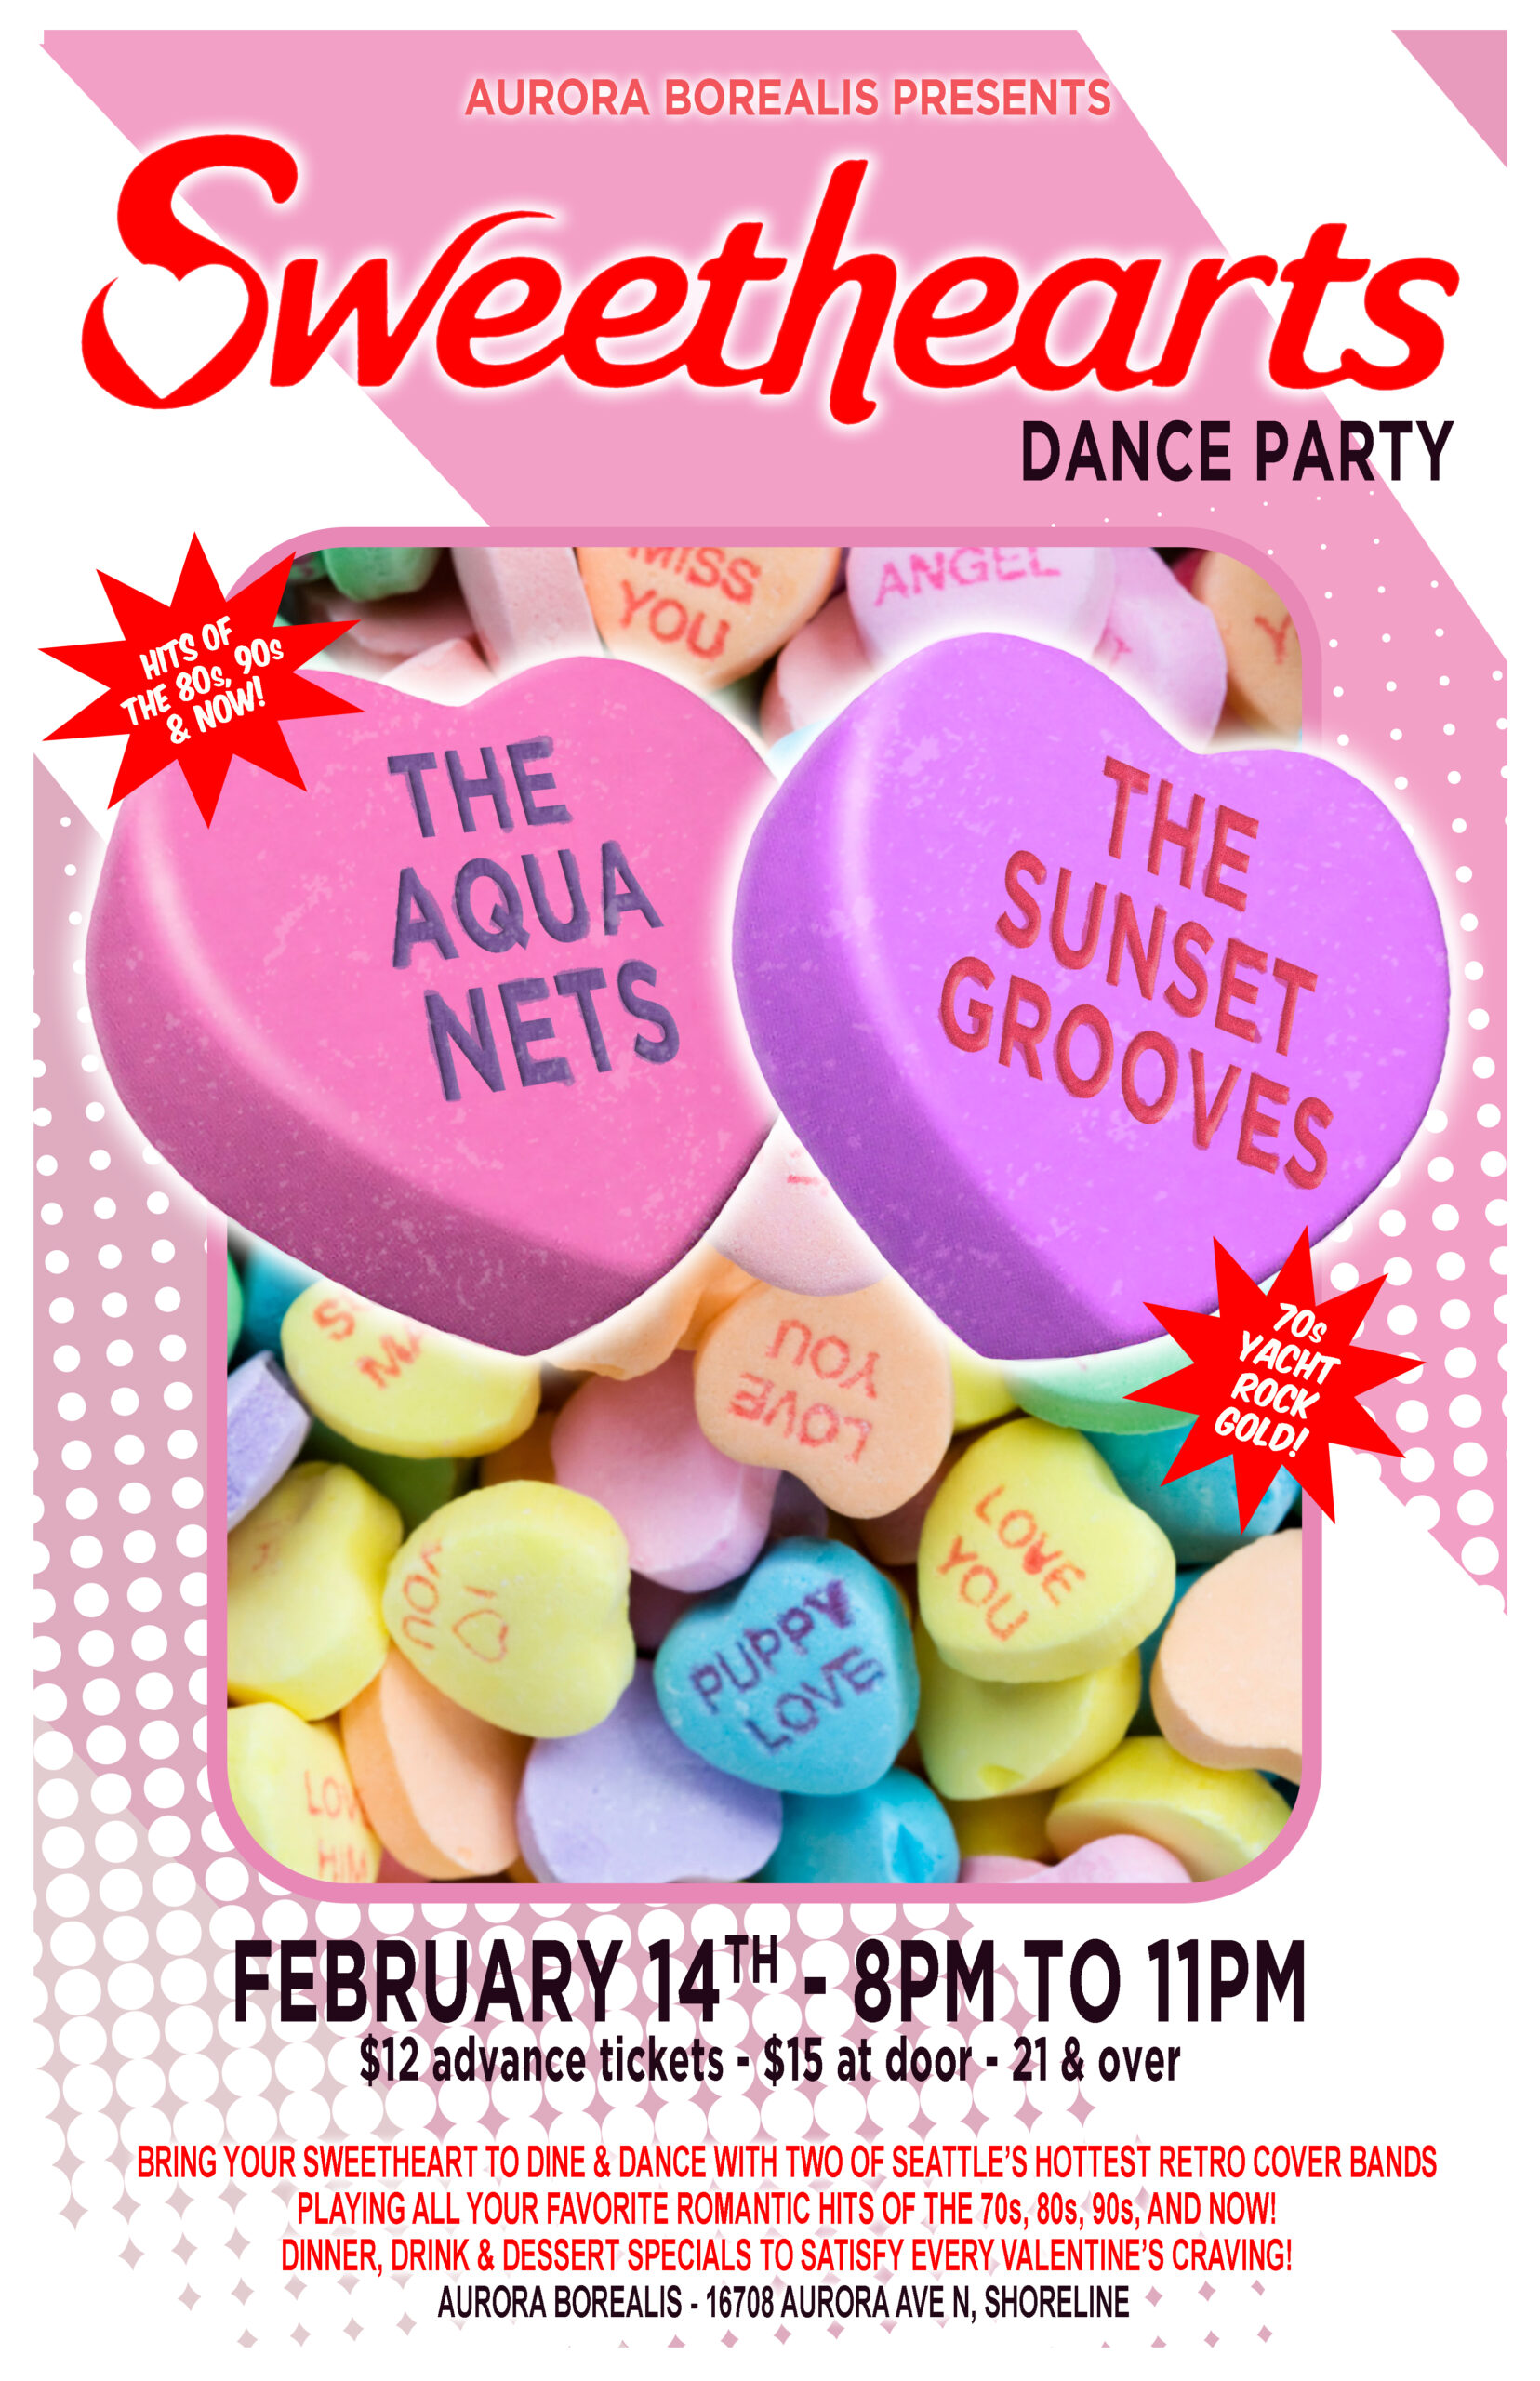 The Aqua Nets & The Sunset Grooves Sweethearts Dance